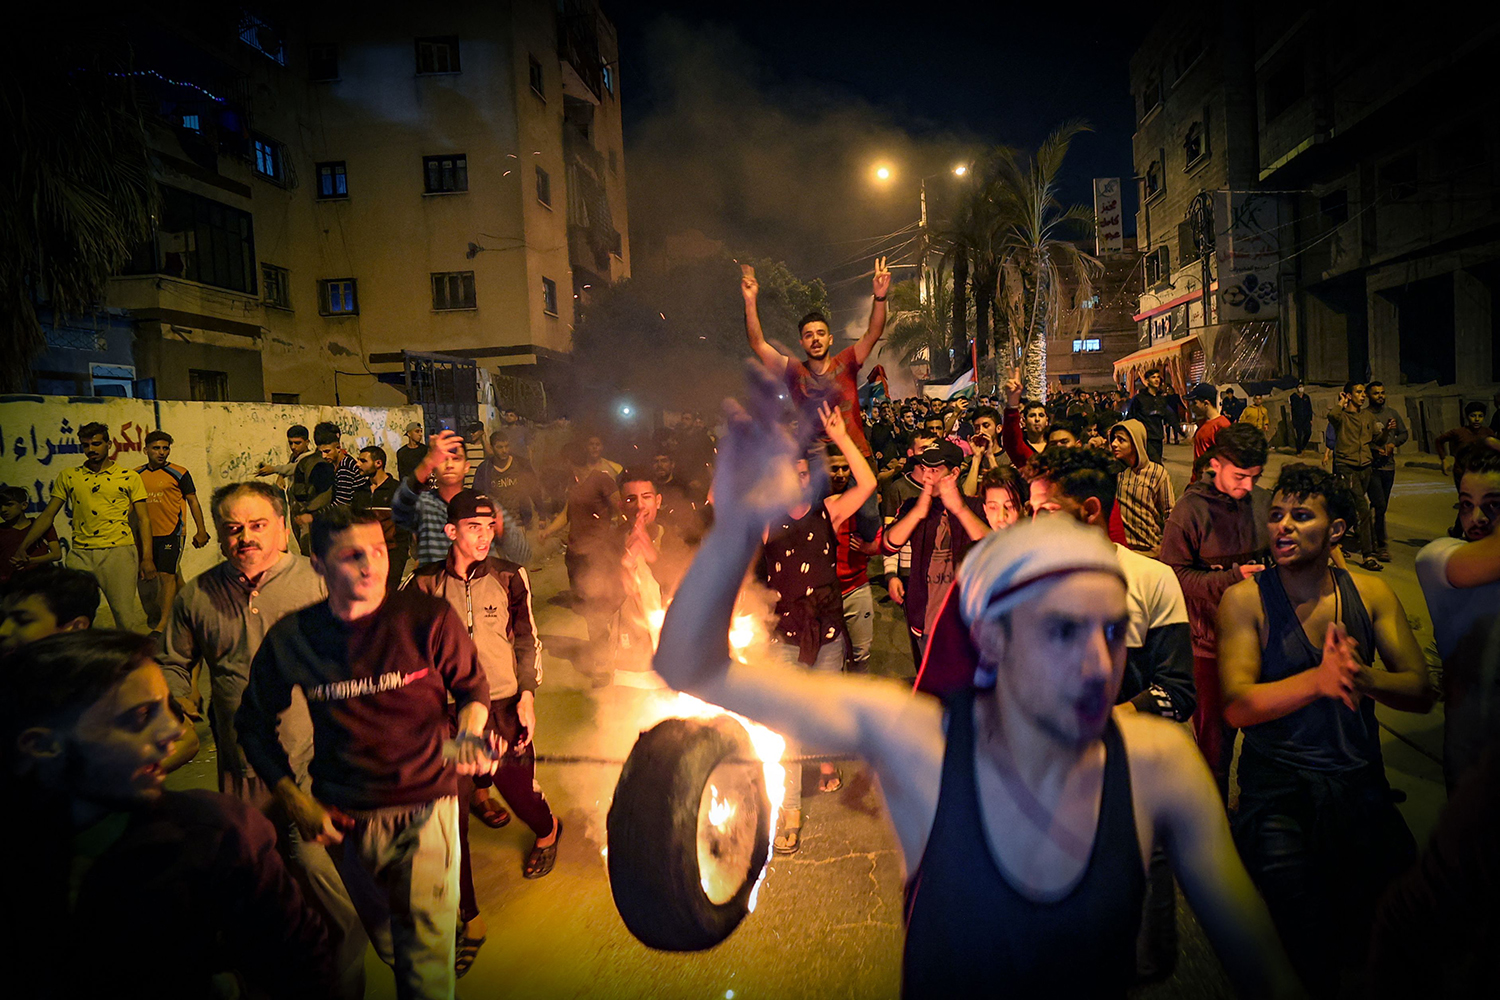 Palestinians parade a burning tire through the streets of Gaza City on April 24 as they shout slogans in support of the Al-Aqsa Mosque and condemn overnight clashes in the Israeli-annexed east Jerusalem. MOHAMMED ABED/AFP via Getty Images